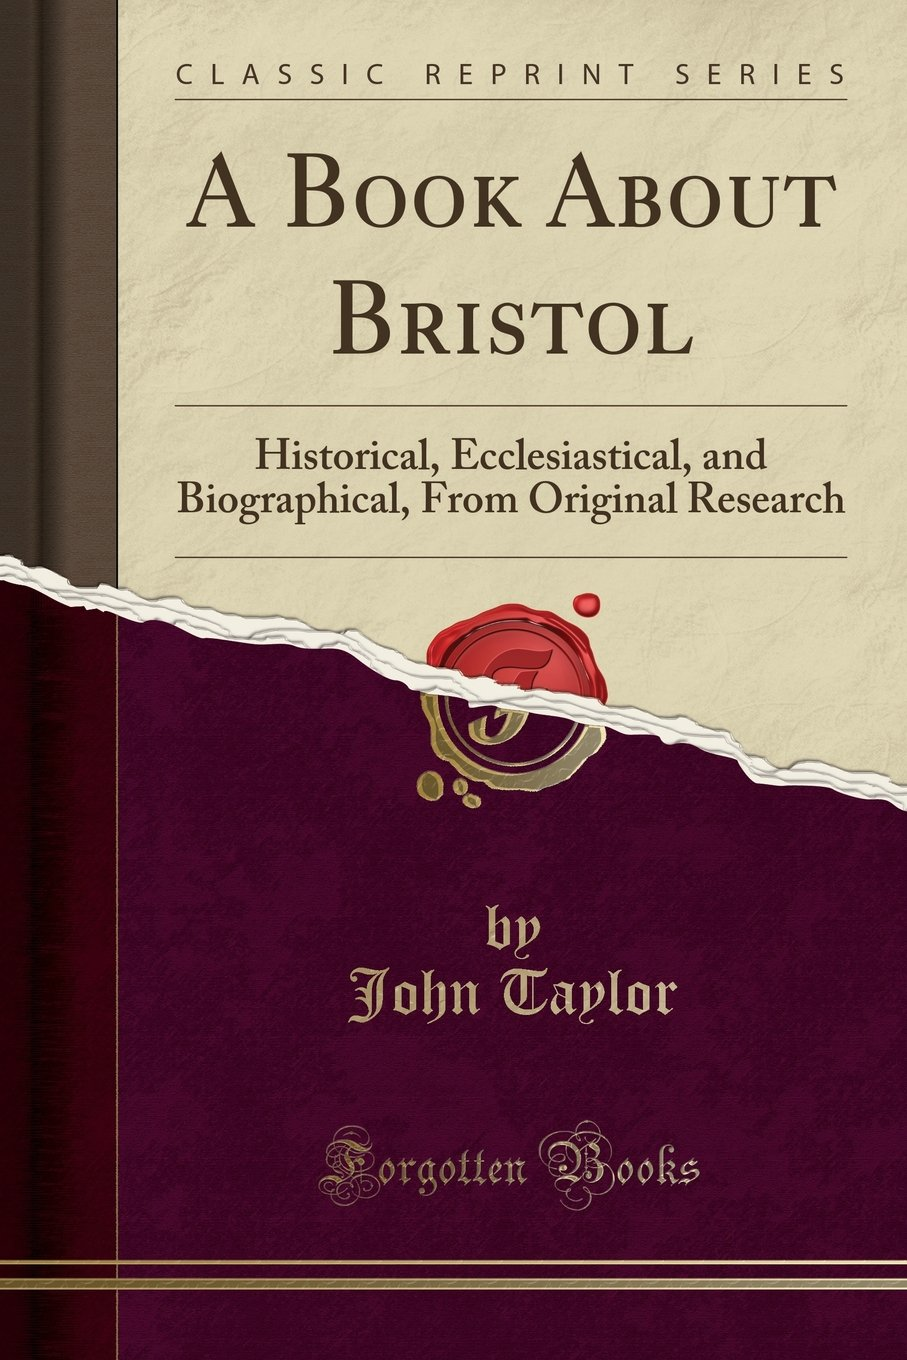 A Book About Bristol: Historical, Ecclesiastical, and Biographical, From Original Research (Classic Reprint) PDF